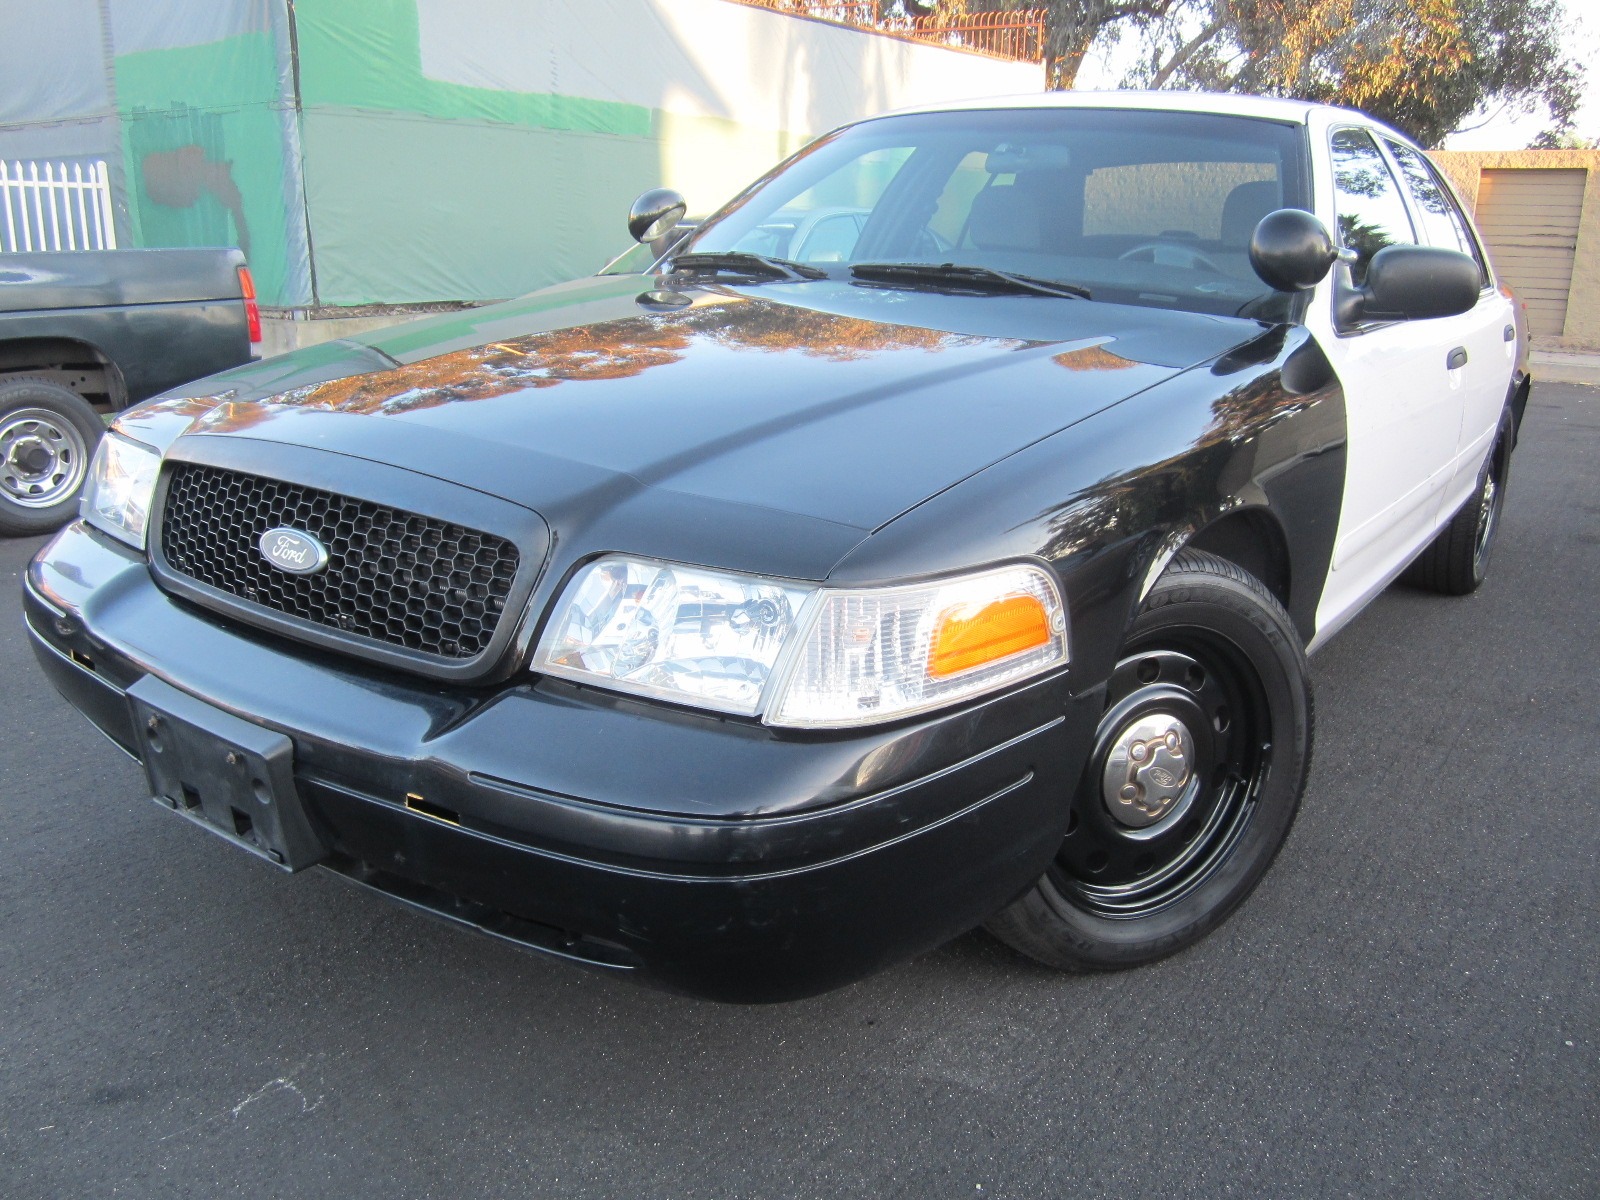 2008 ford crown victoria pictures cargurus. Black Bedroom Furniture Sets. Home Design Ideas